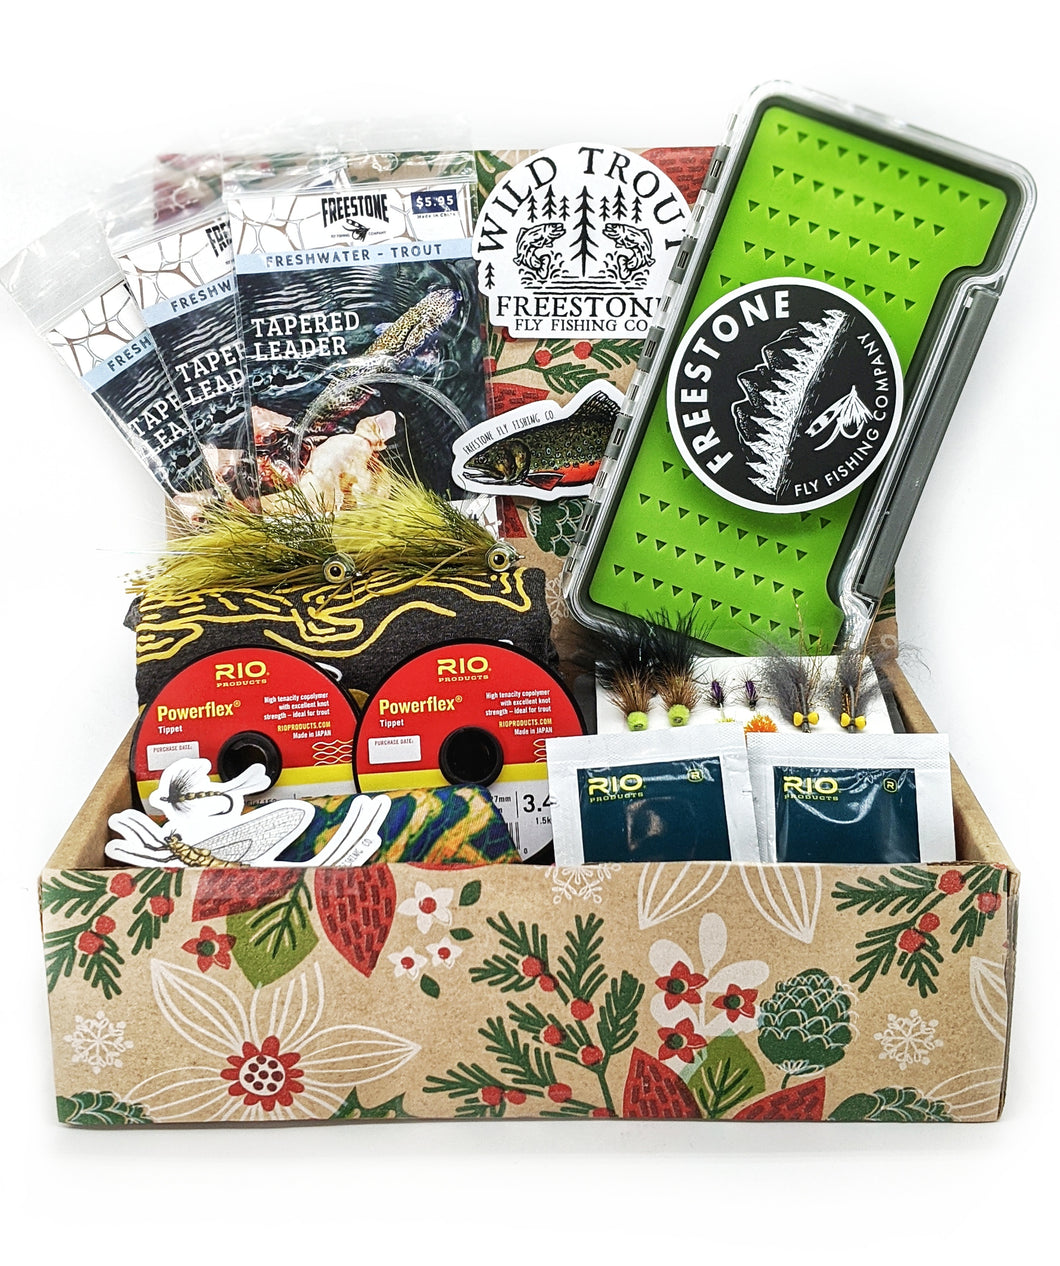 Freestone Fishmas Crate